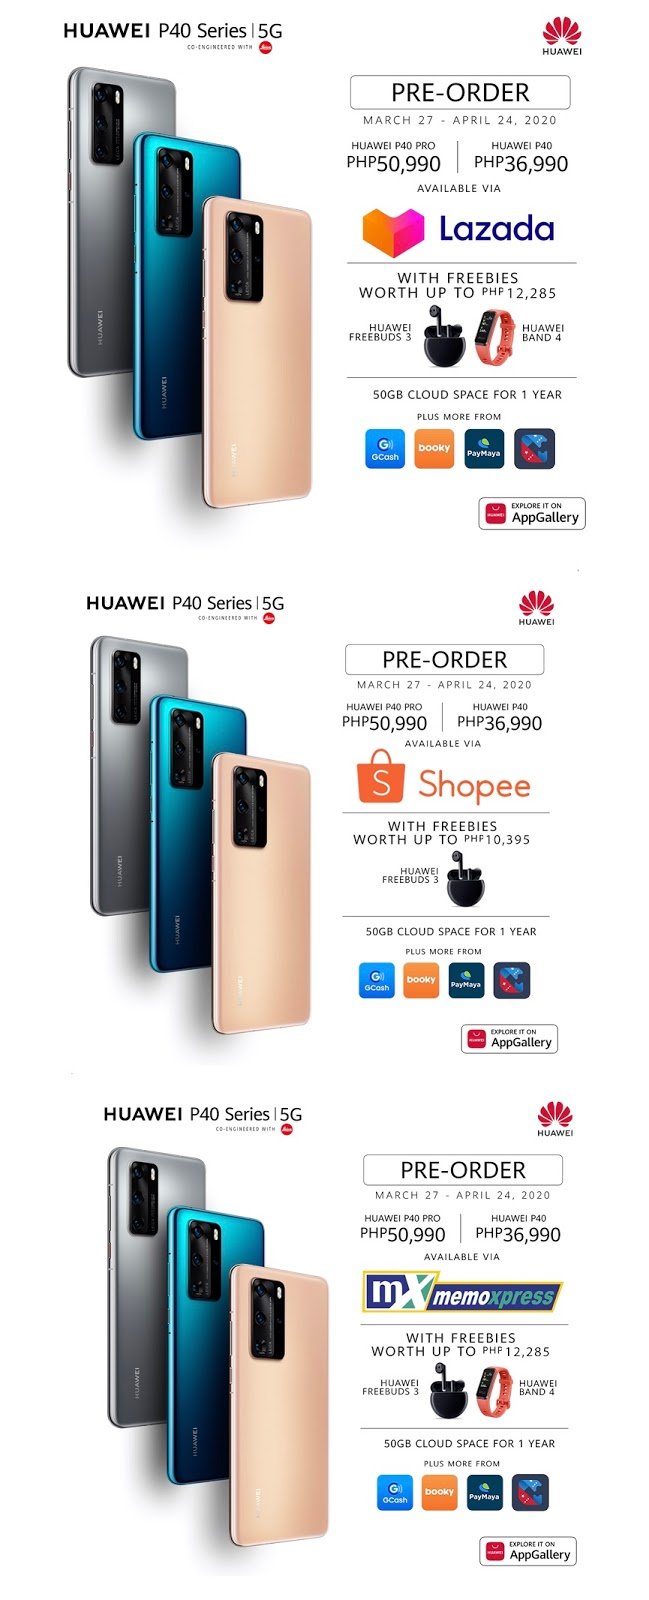 huawei p40 and p40 pro pre order